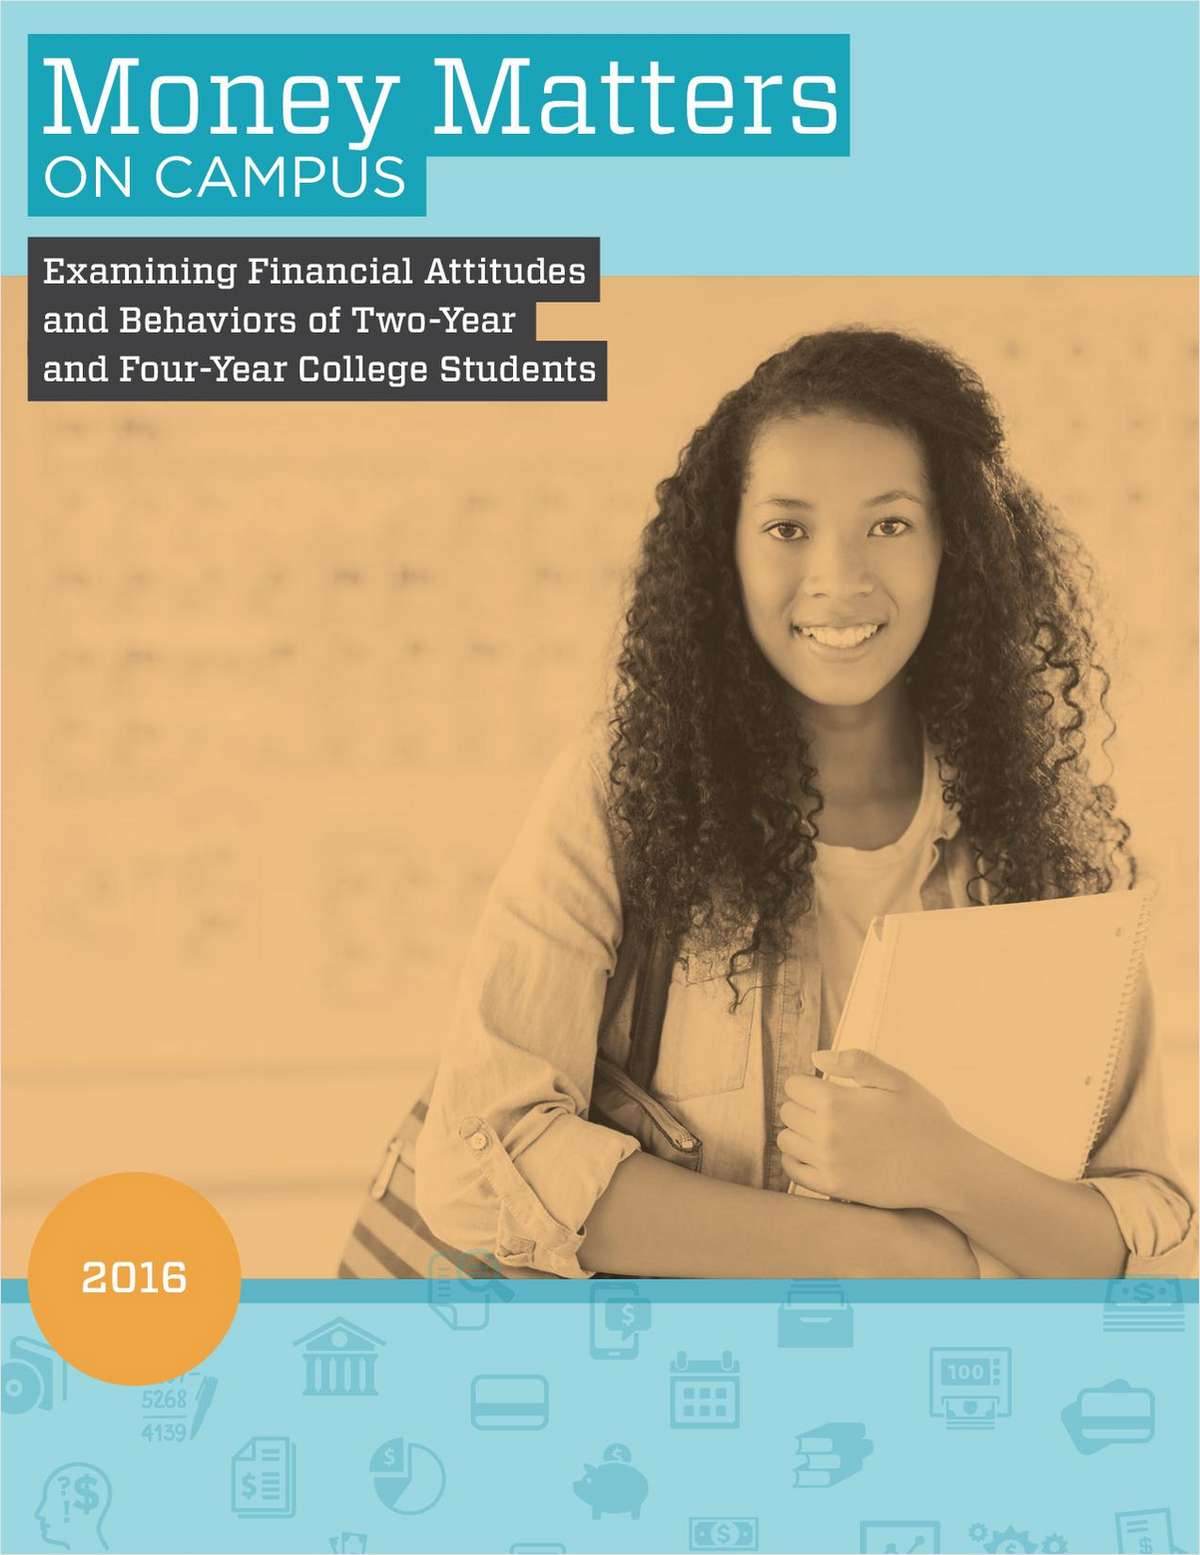 What Bank Marketers Need to Know To Reach Two-Year and Four-Year College Students